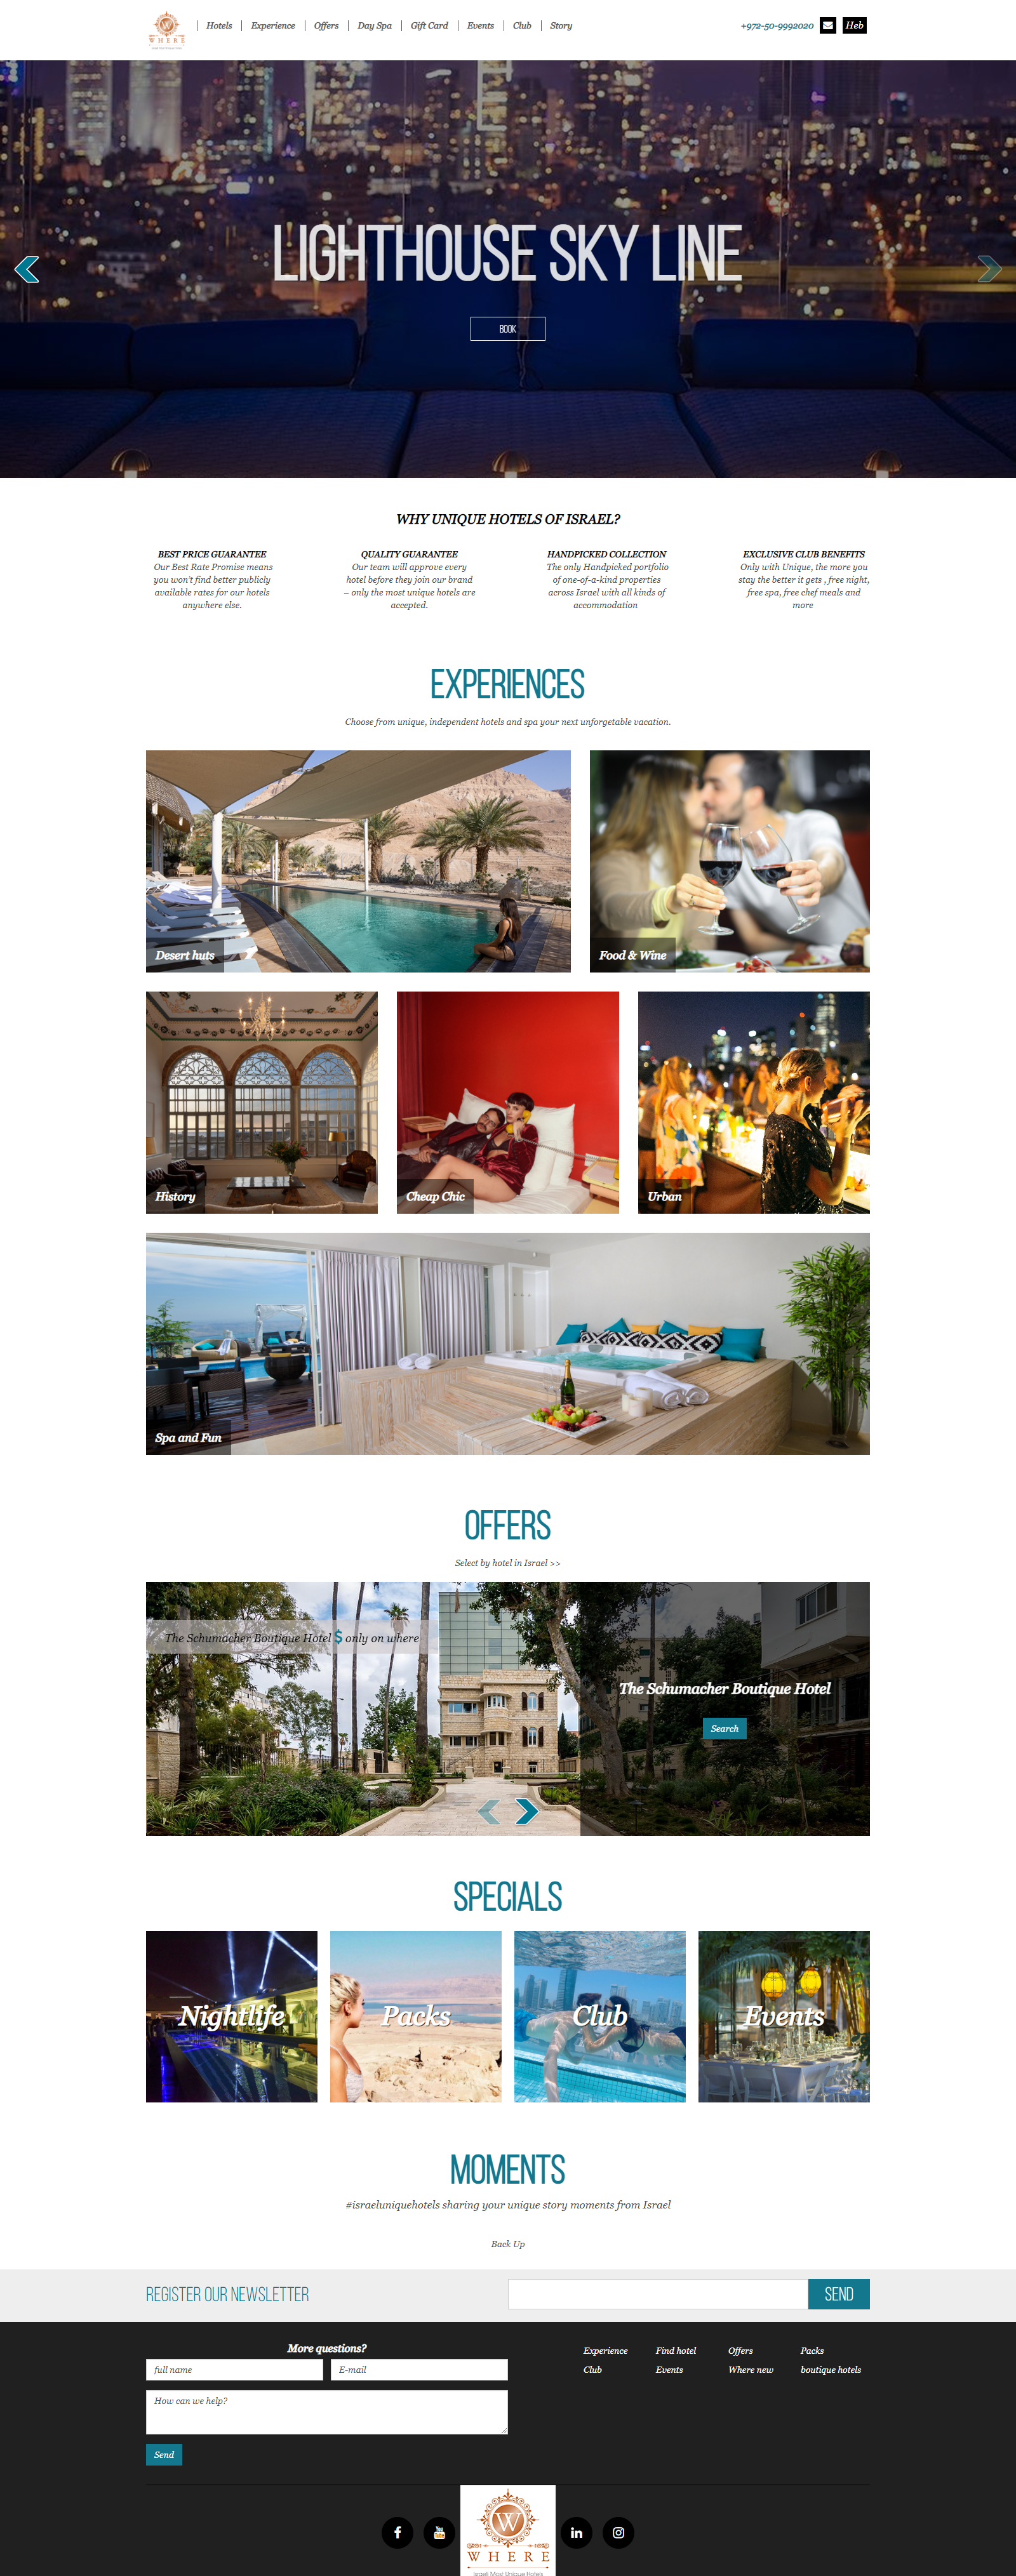 Where - UNIQUE HOTELS OF ISRAEL